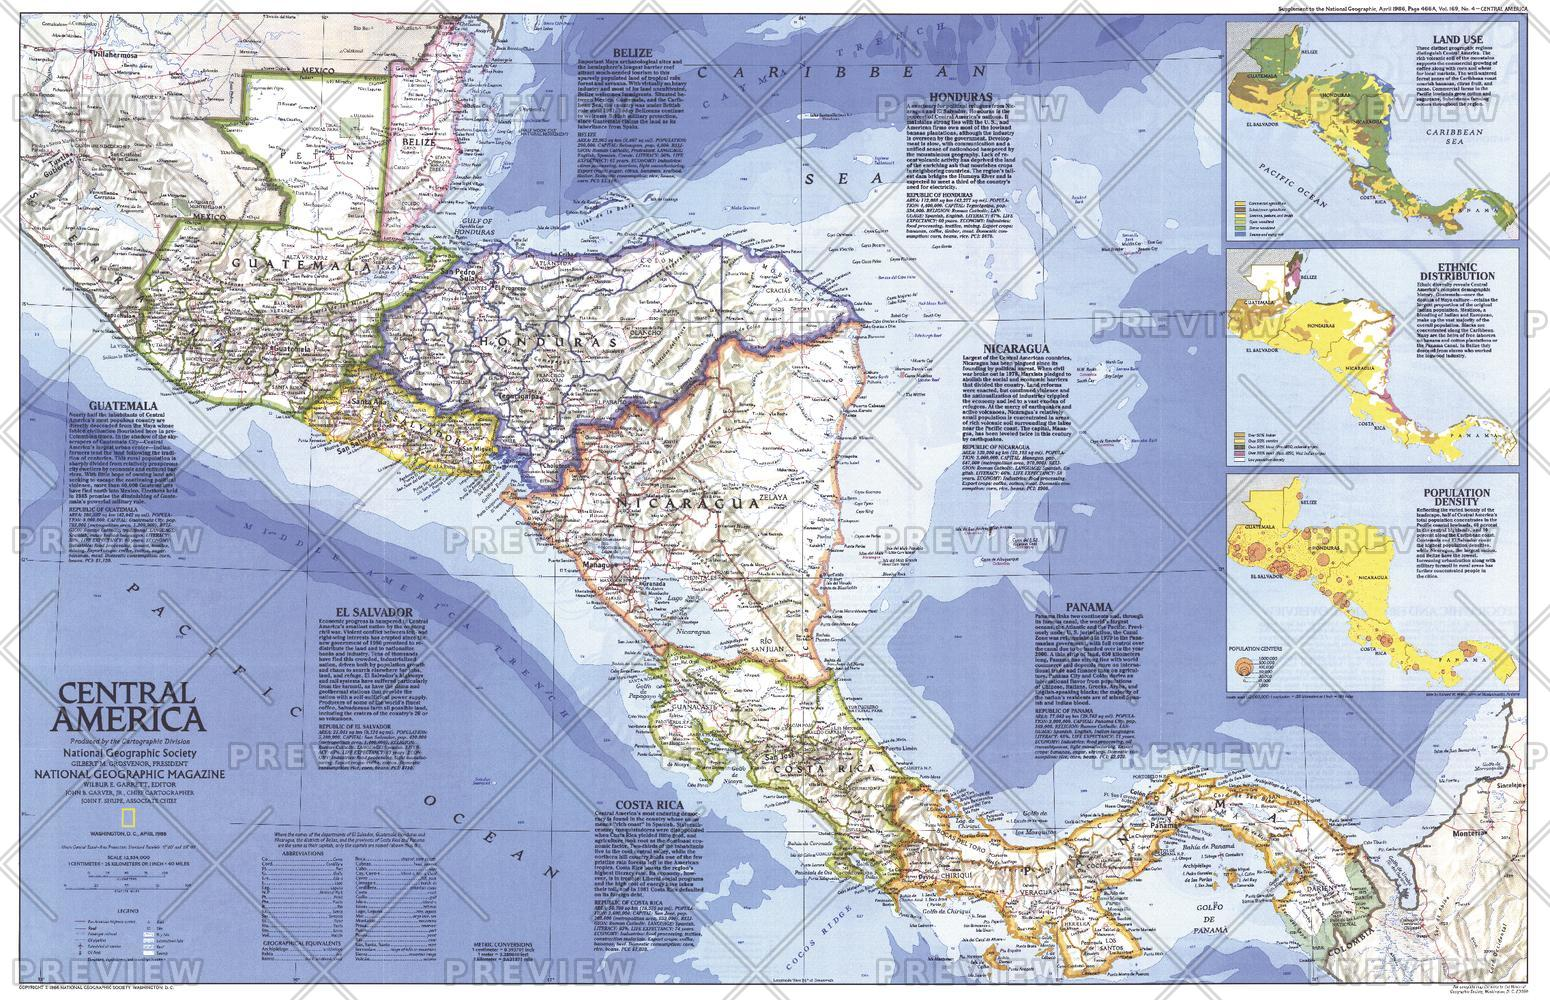 Central America  -  Published 1986